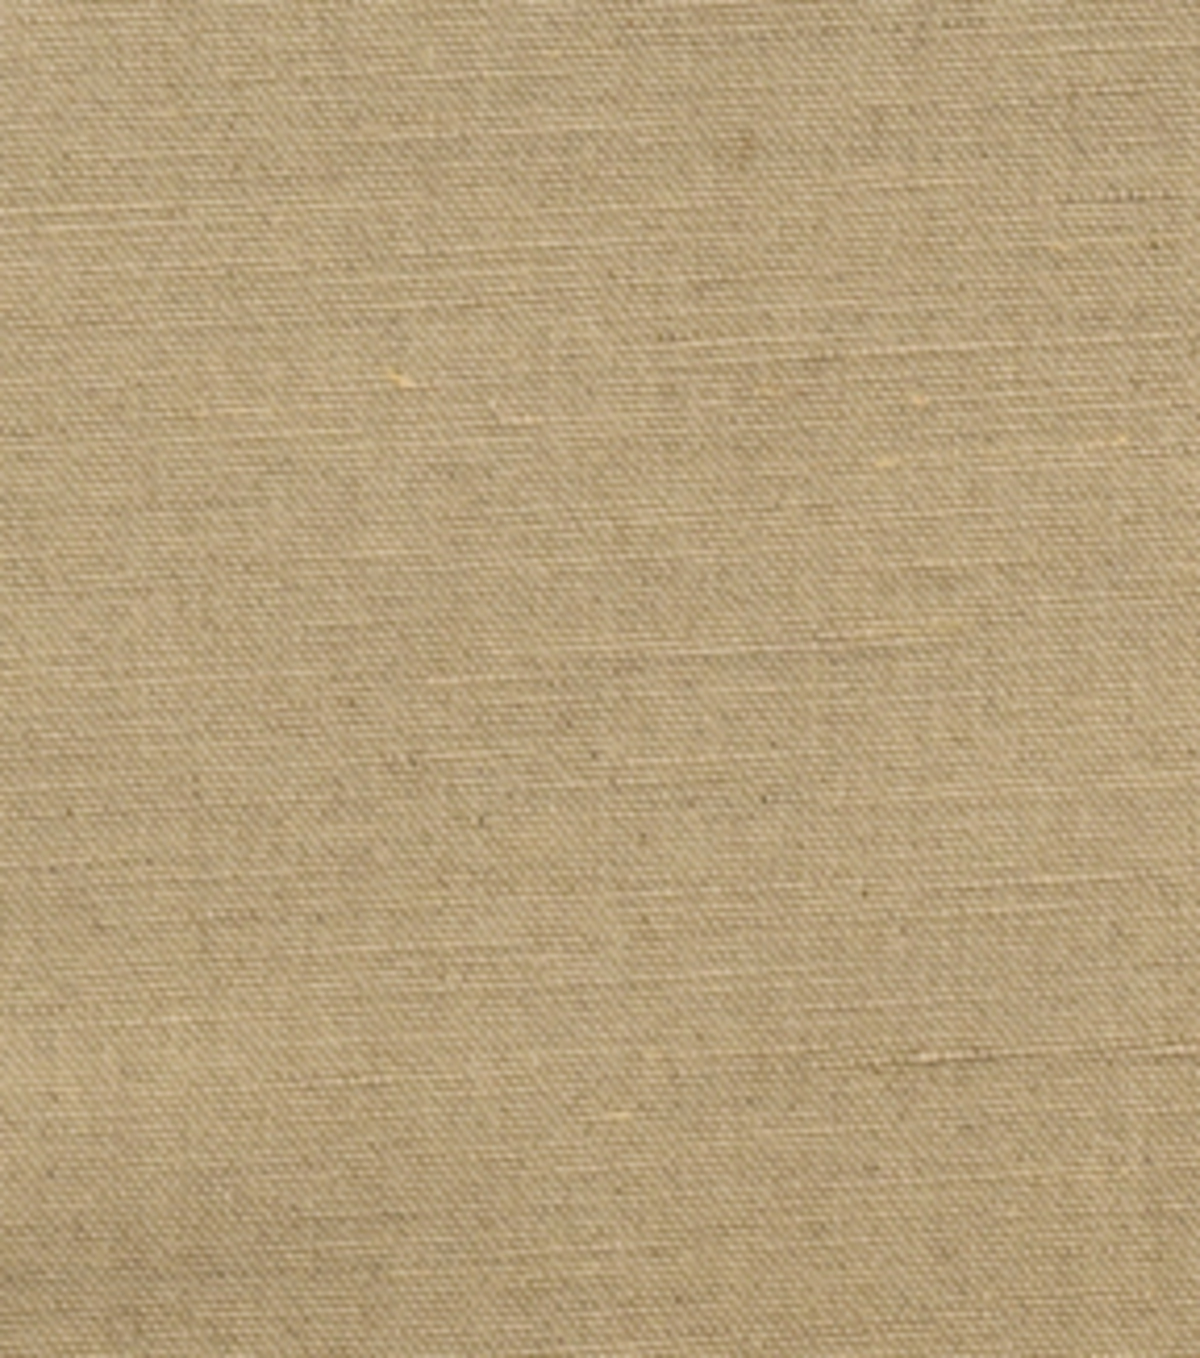 Home Decor 8\u0022x8\u0022 Fabric Swatch-Signature Series Sonoma Linen-Cotton Tan